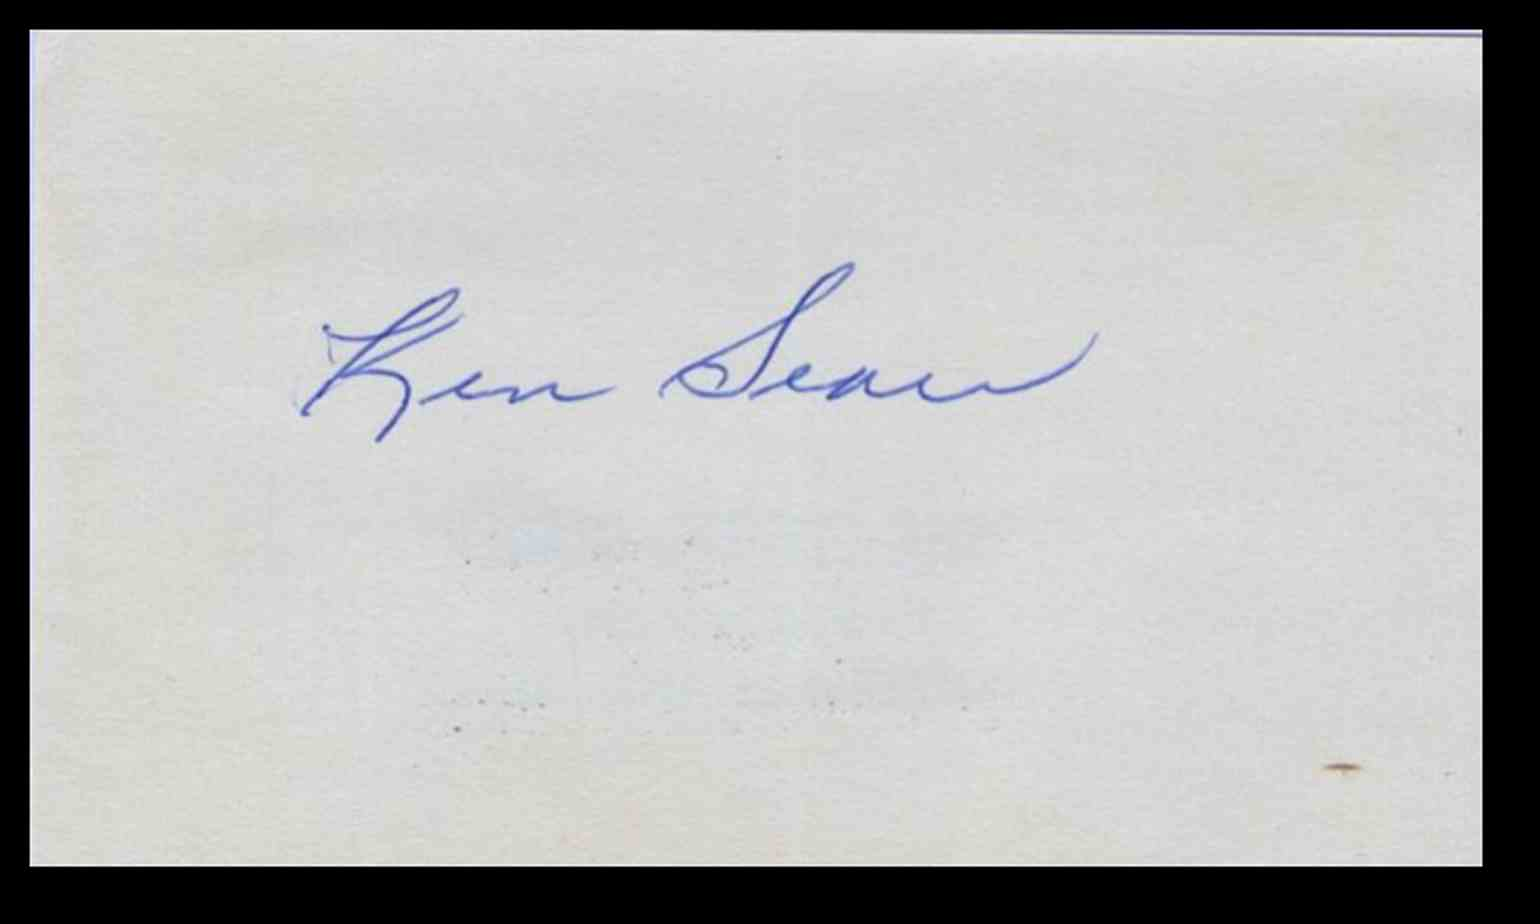 1943 3X5 Ken Sears card front image